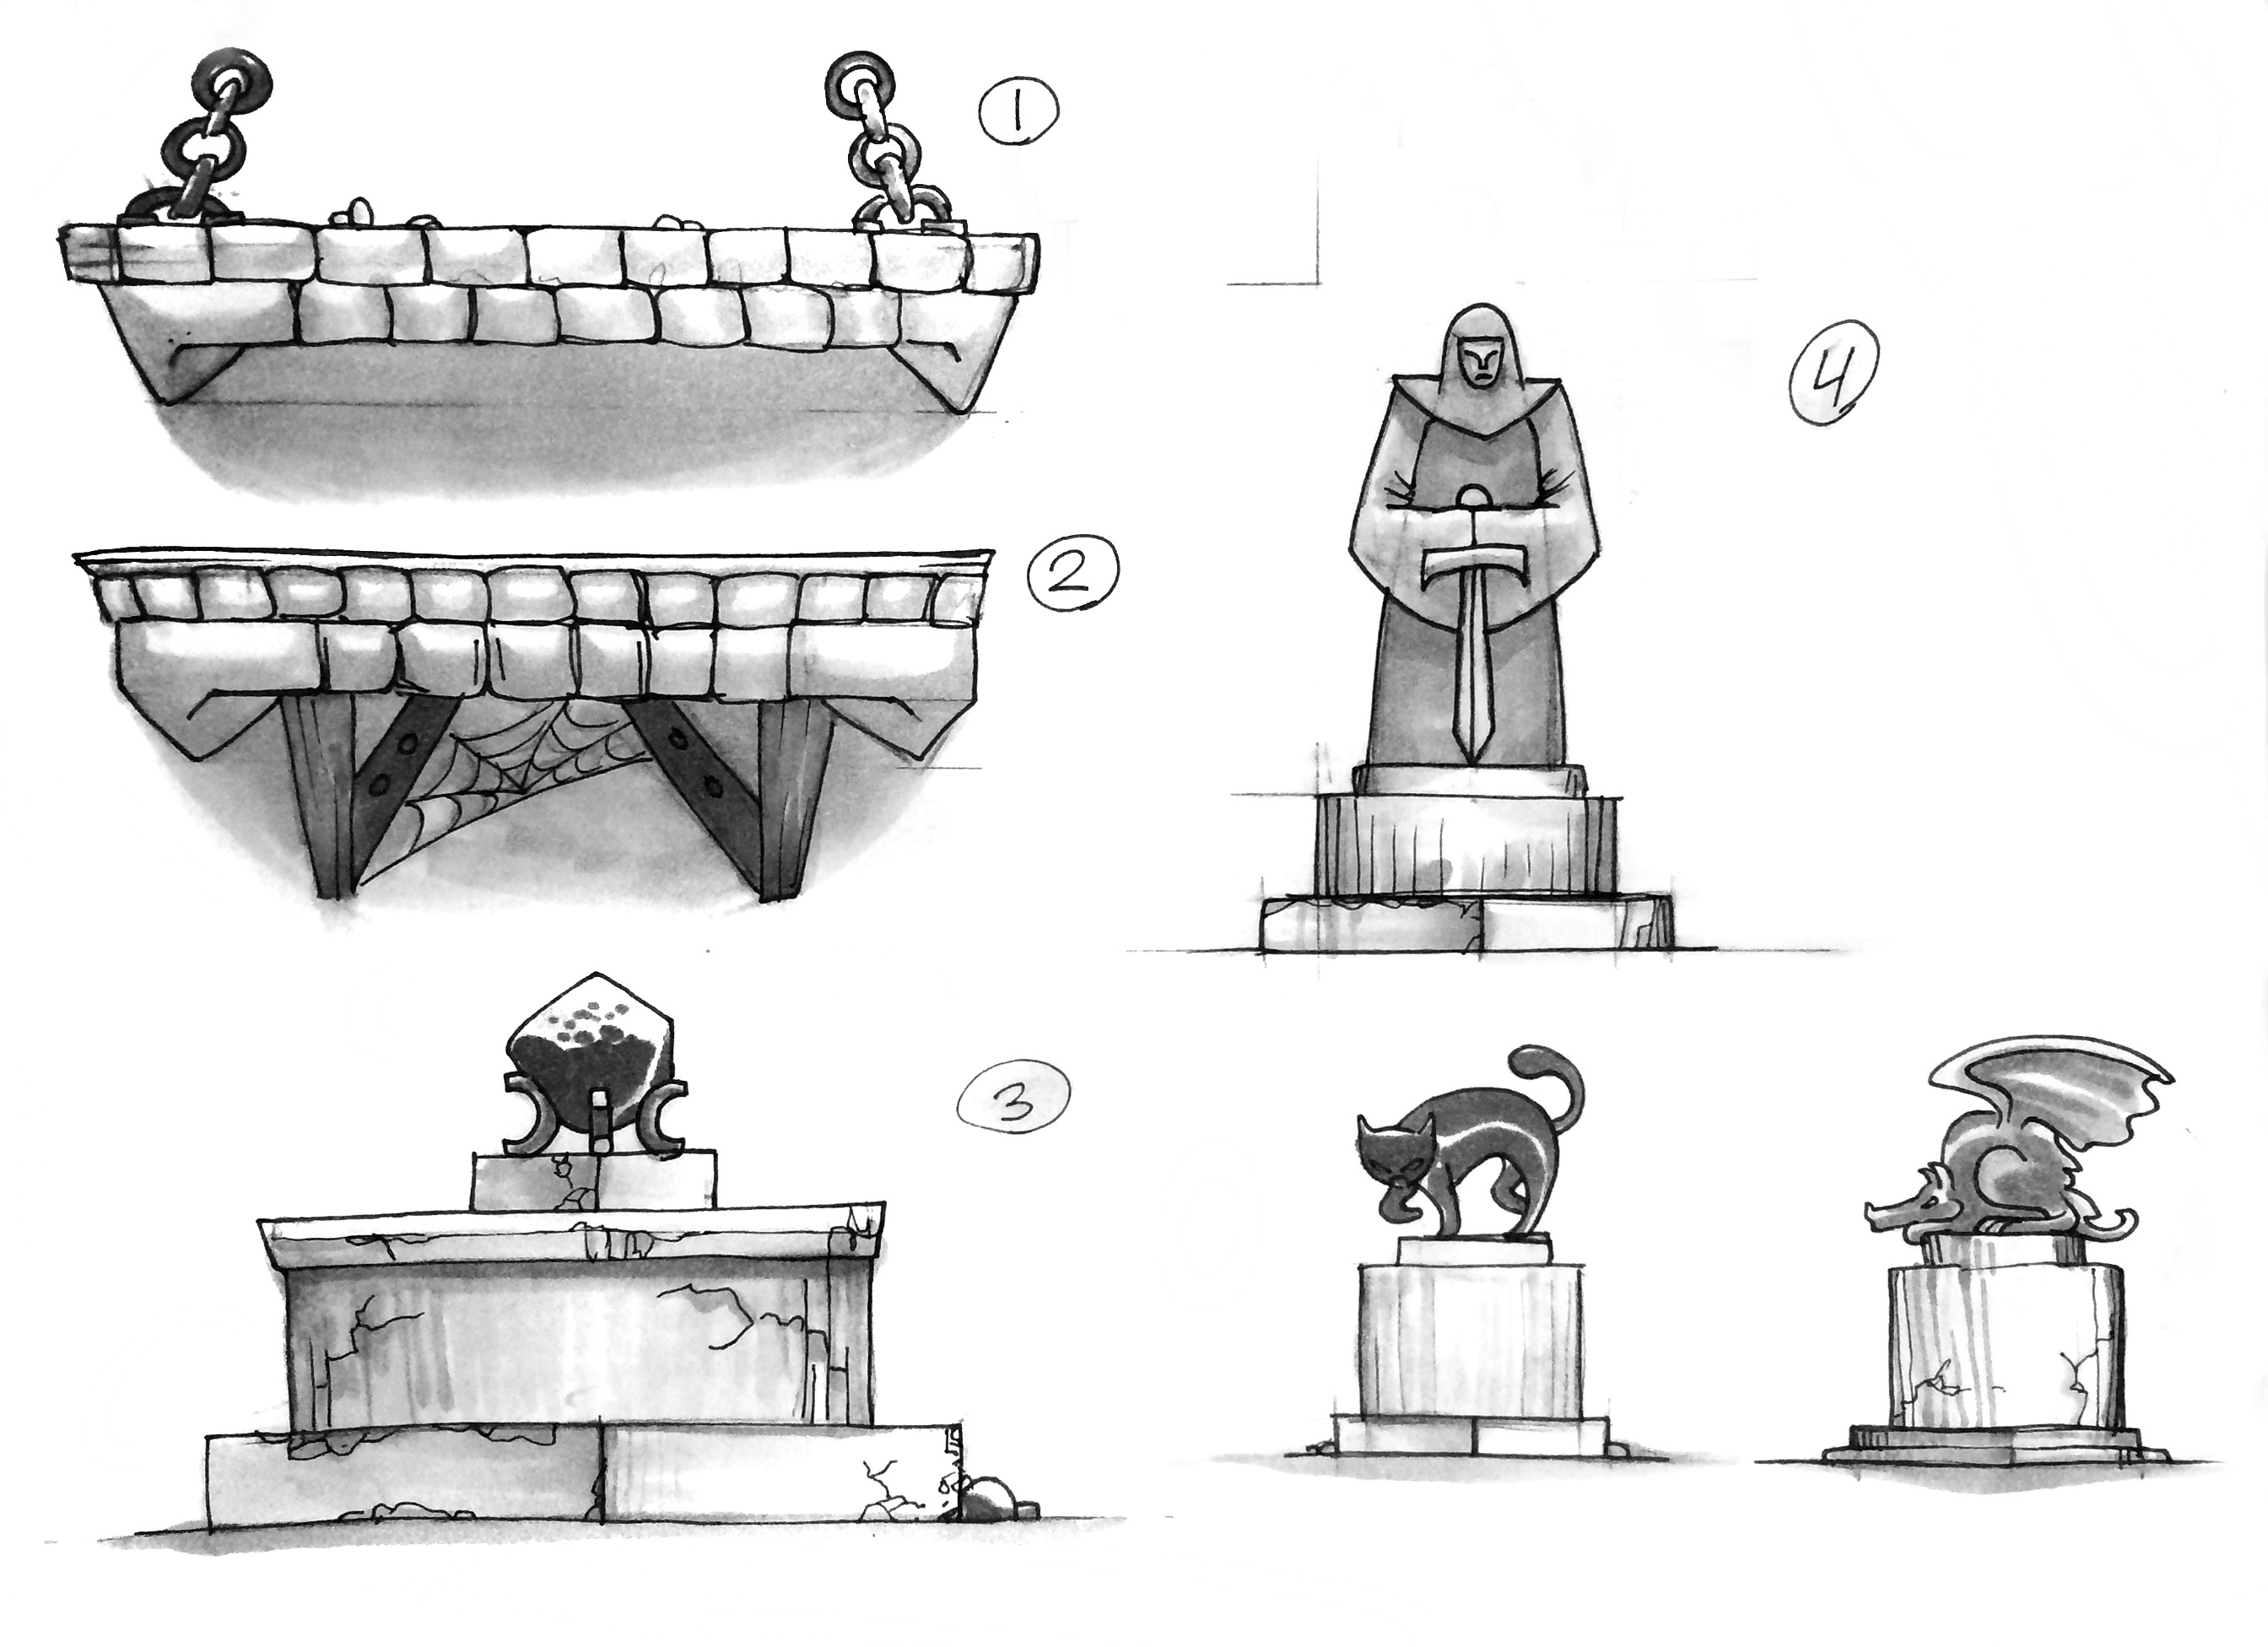 Concepts for iOS game assets. 2012